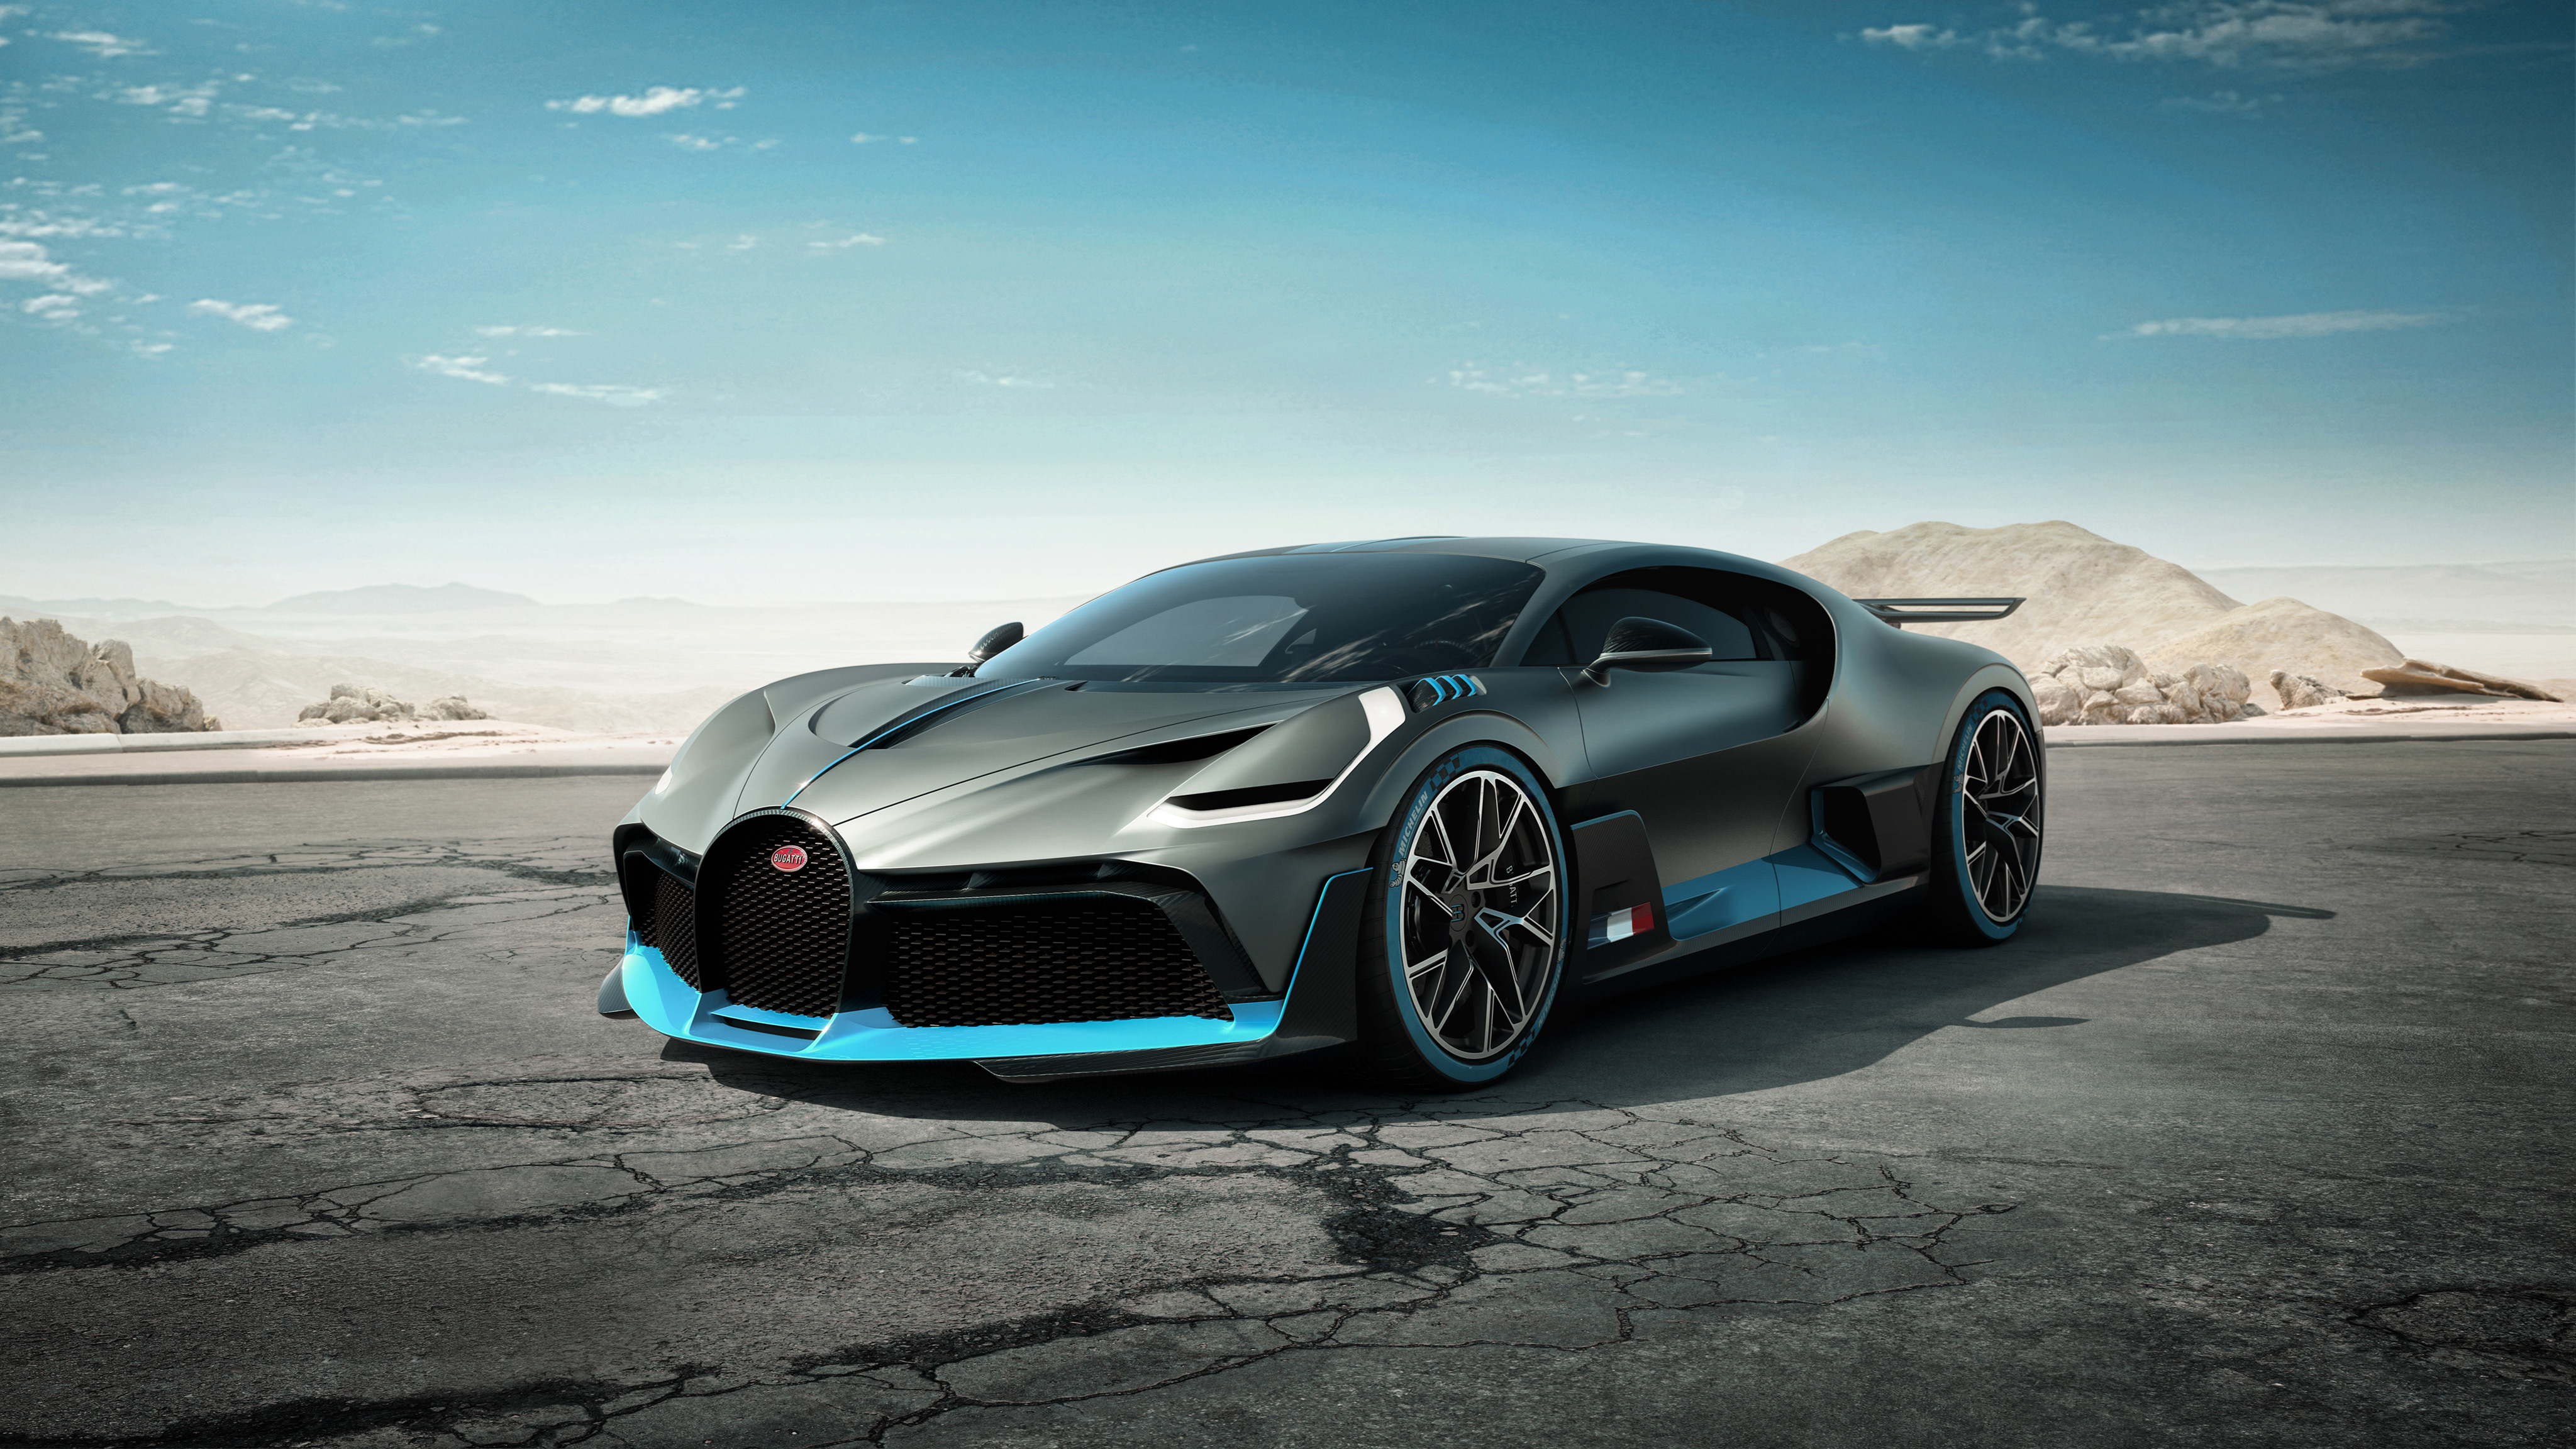 2018 Bugatti Divo Hd Cars 4k Wallpapers Images